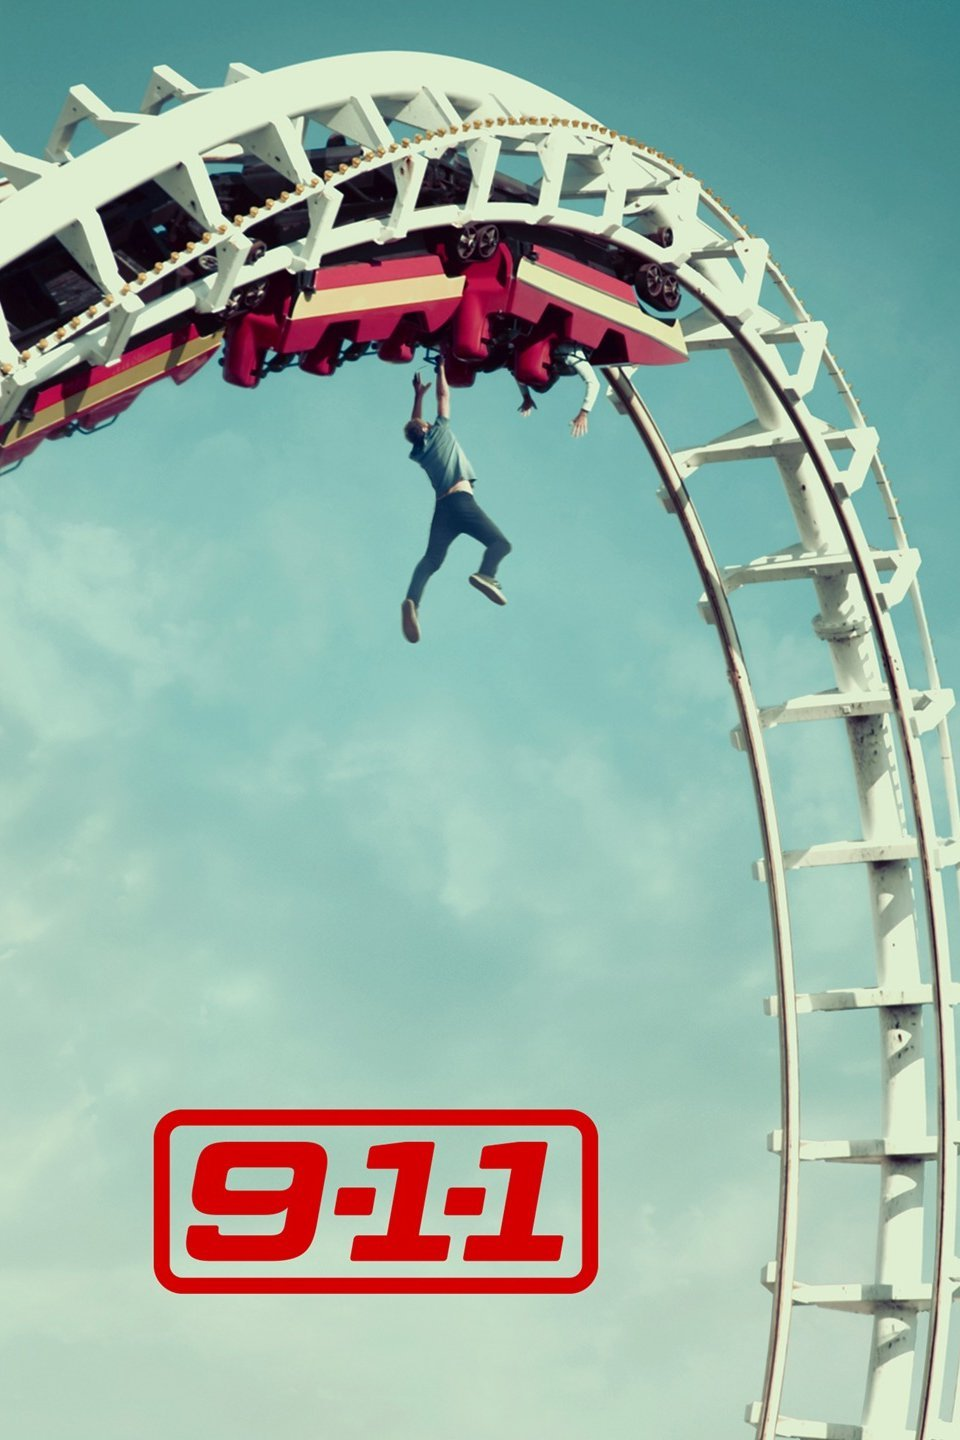 9-1-1 Season 1 Episode 10 Download HDTV 480p & 720p